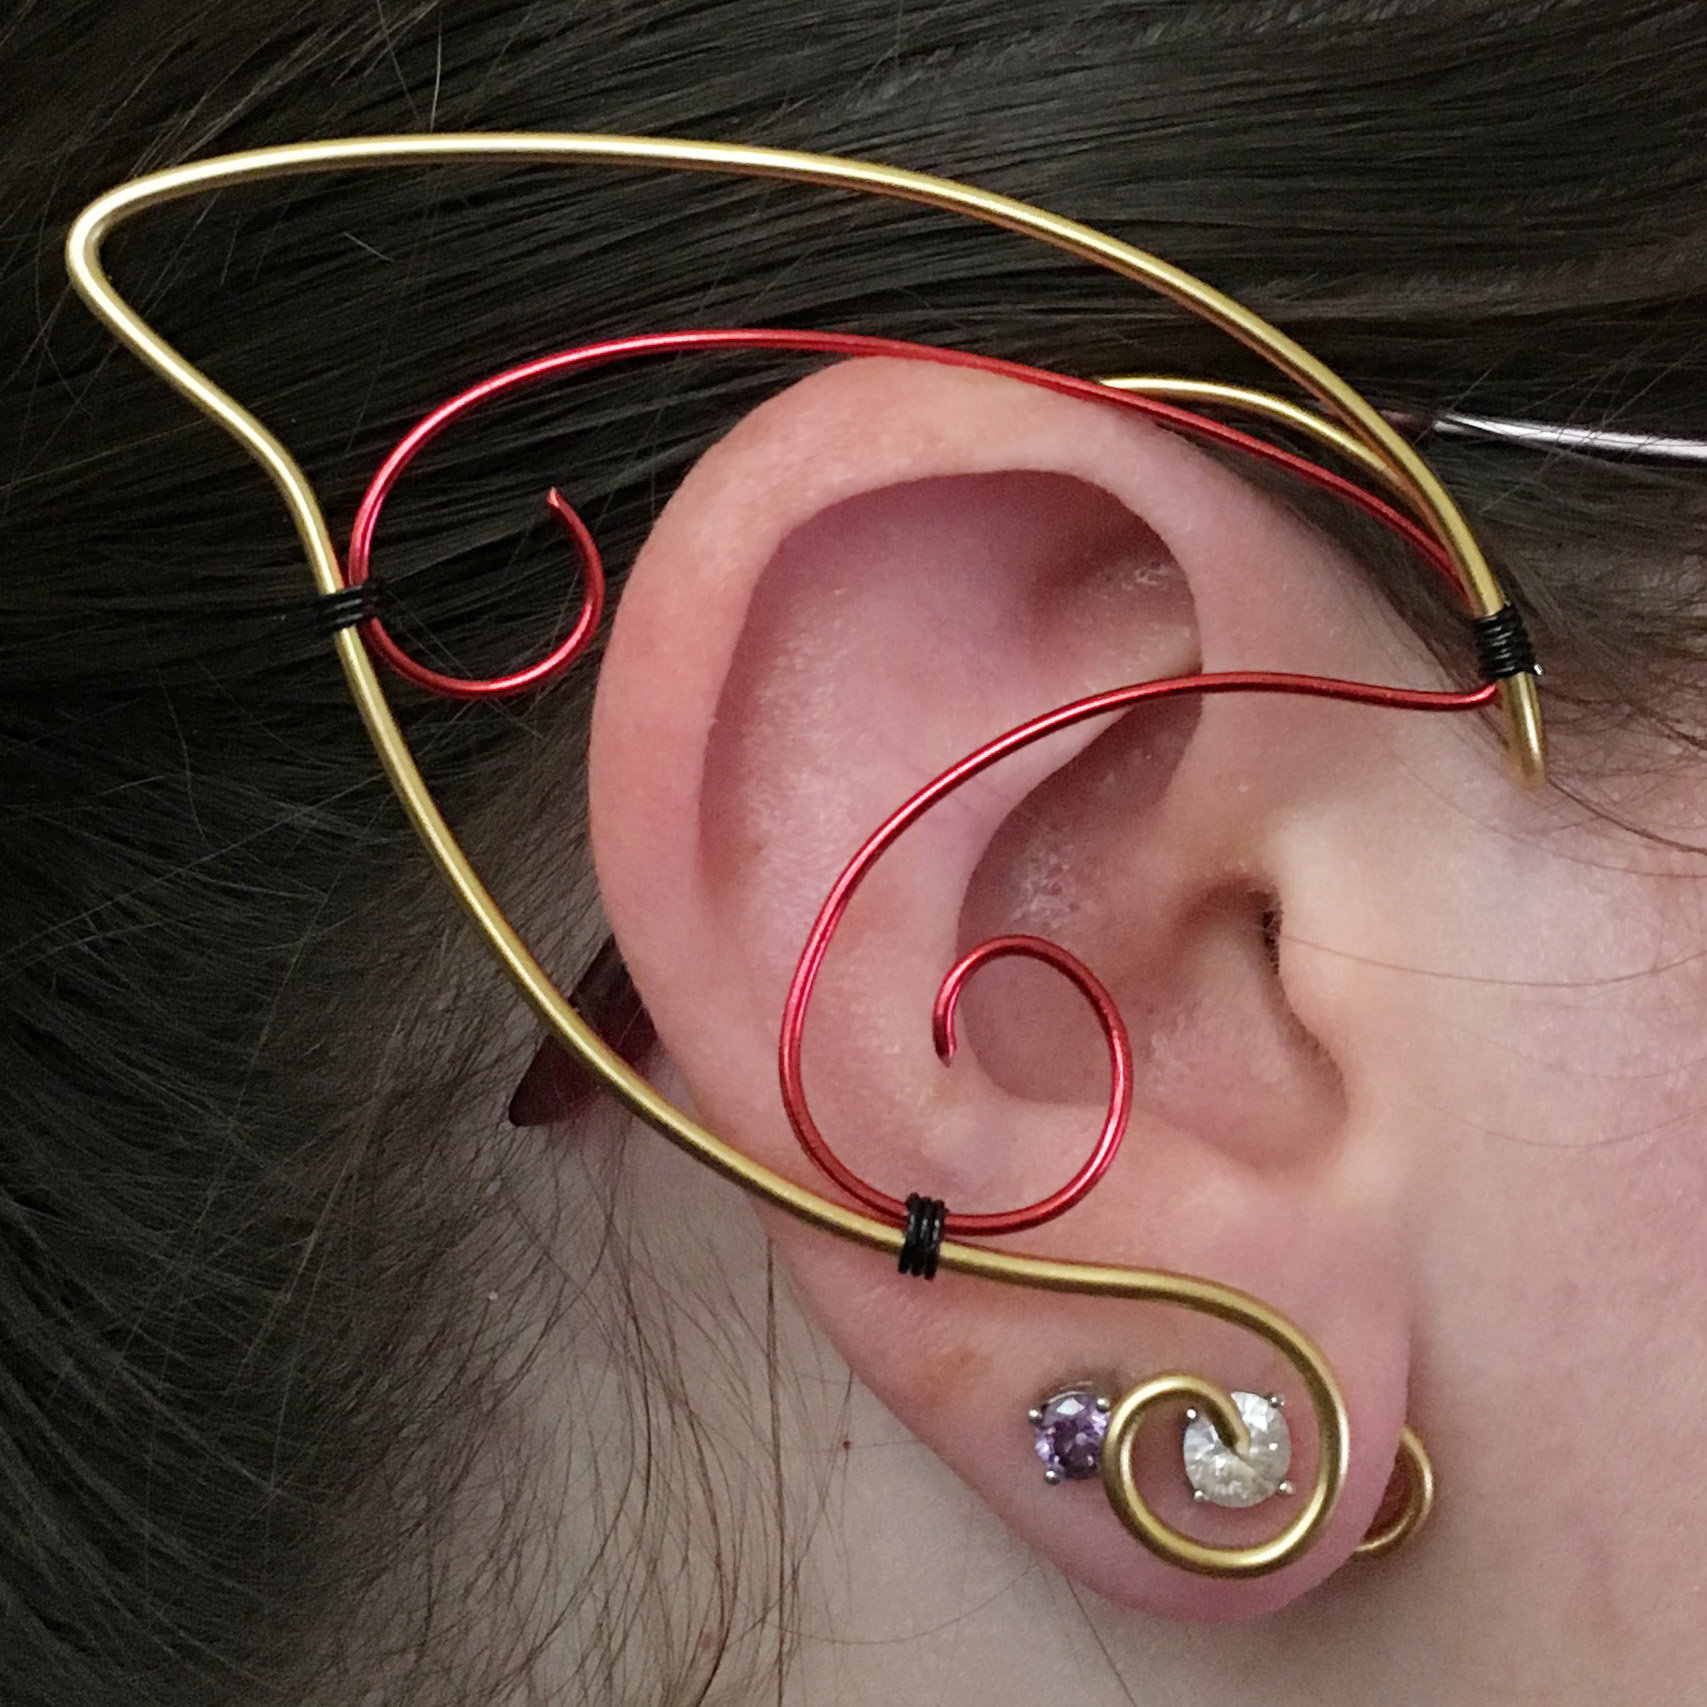 Elf Ear Cuff - Gold and Red EC013